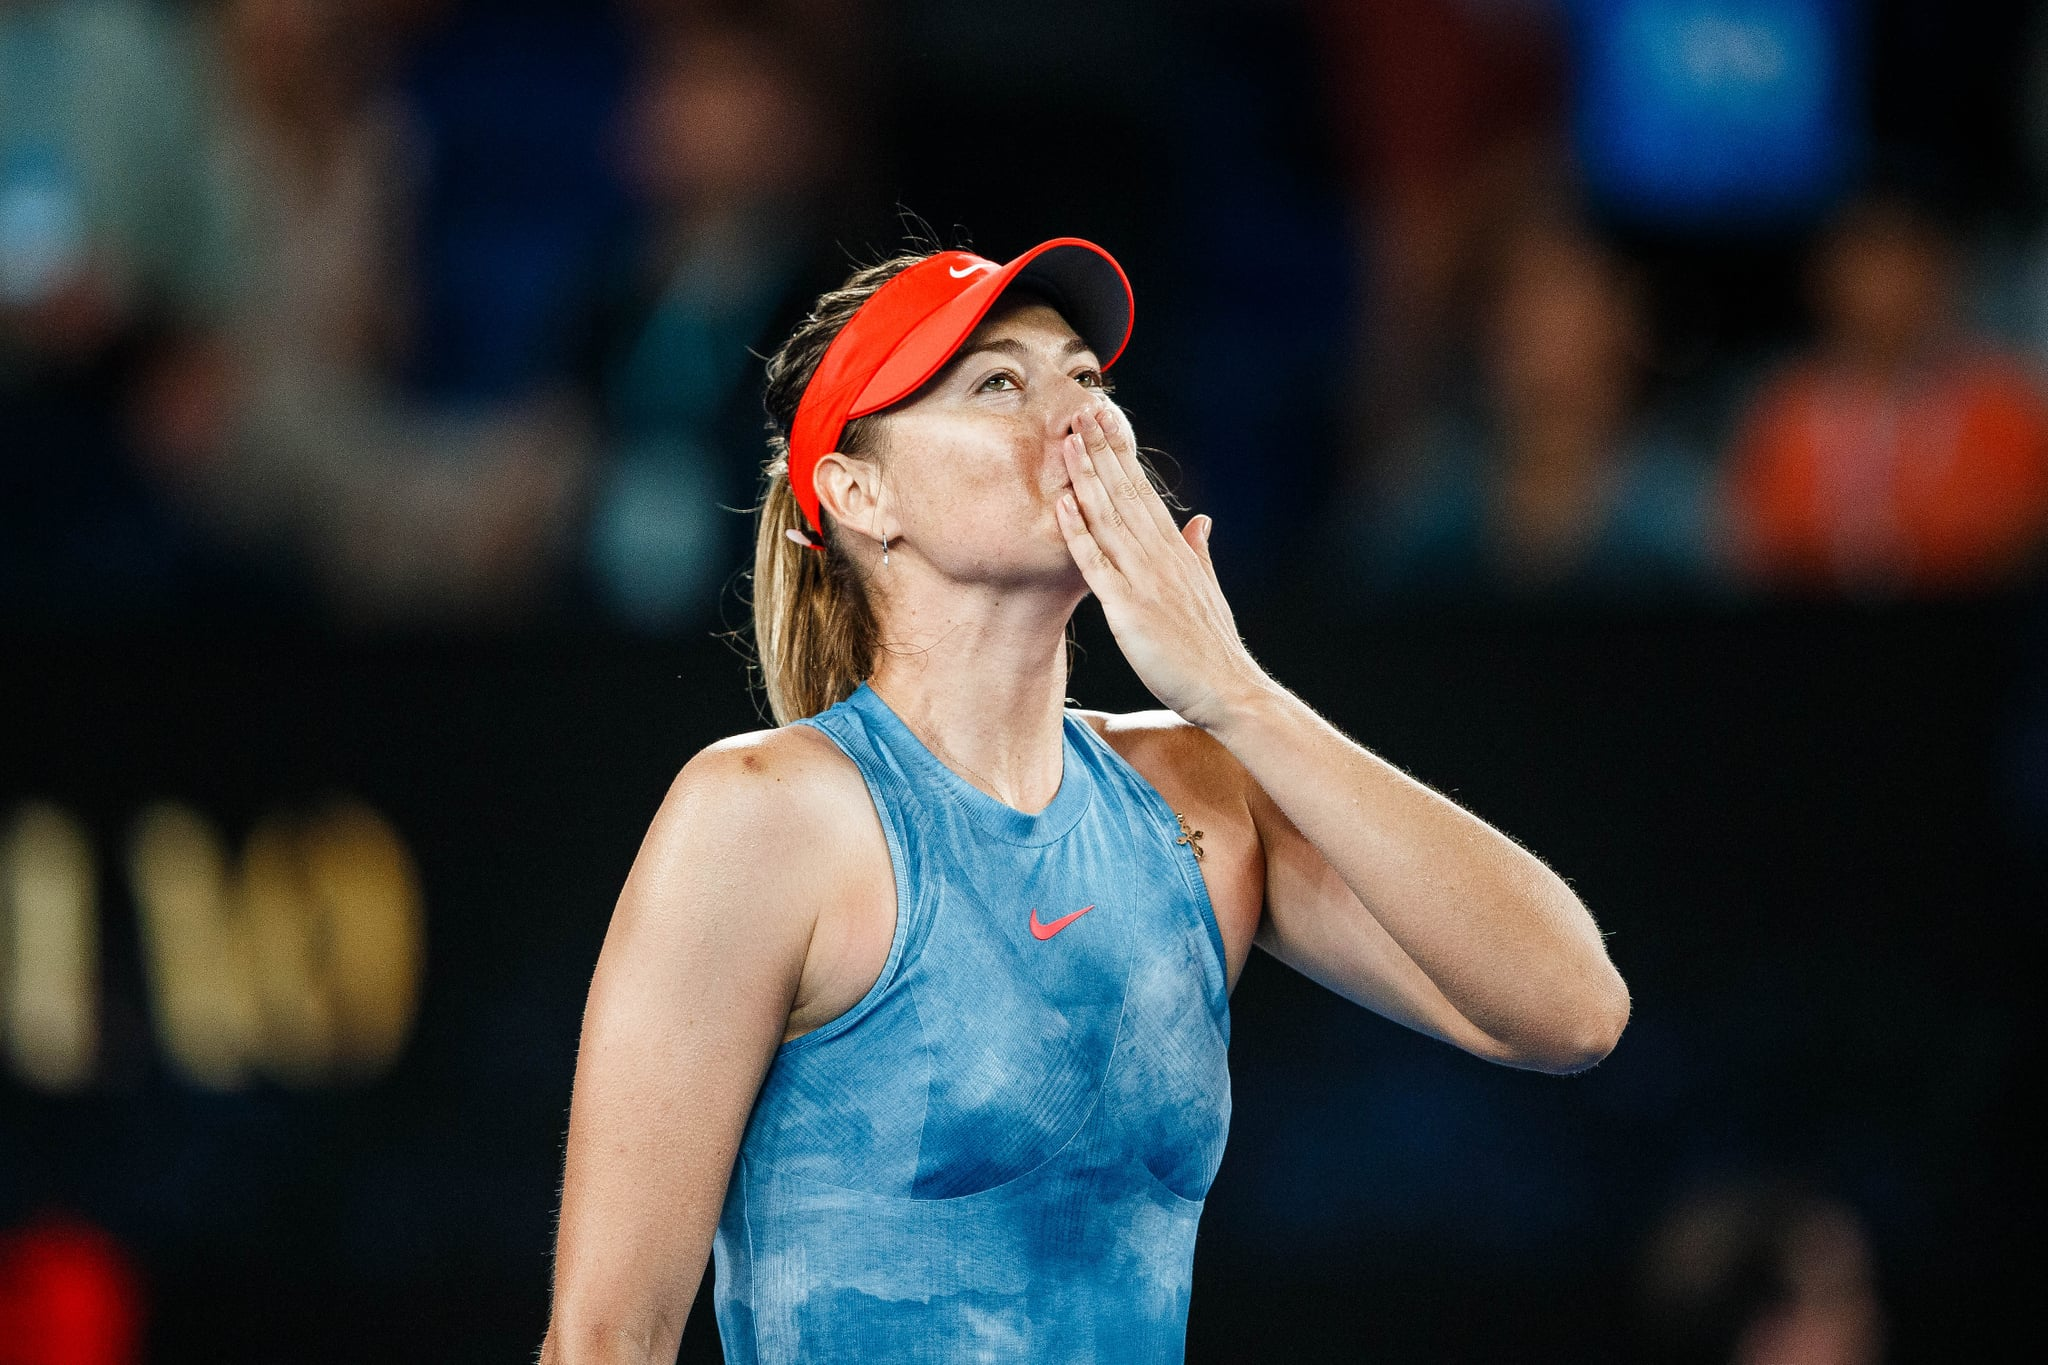 MELBOURNE, VIC - JANUARY 18: MARIA SHARAPOVA (RUS) during day five match of the 2019 Australian Open on January 18, 2019 at Melbourne Park Tennis Centre Melbourne, Australia (Photo by Chaz Niell/Icon Sportswire via Getty Images)